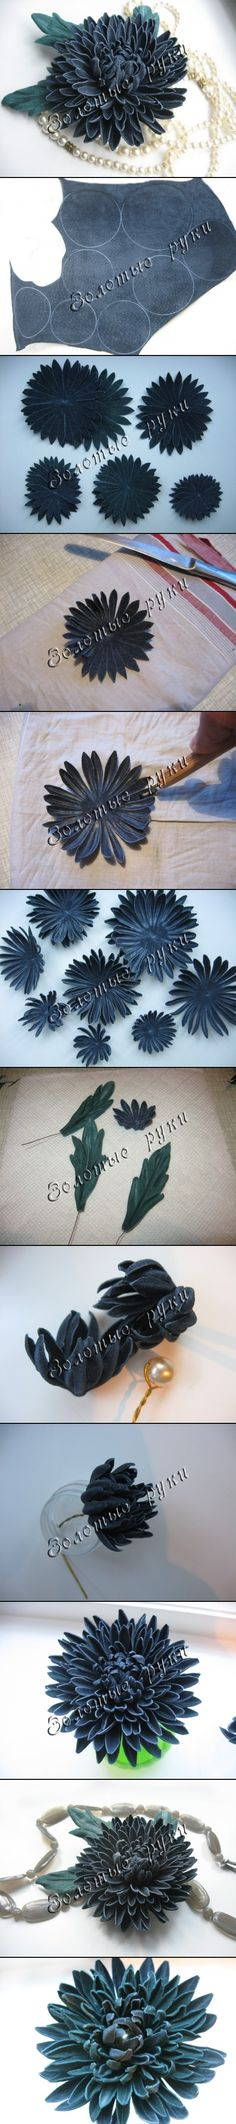 Leather chrysanthemum tutorial - I have some pink suede, I wonder if it would work. Or does it work only with shiny leather? Must find out!